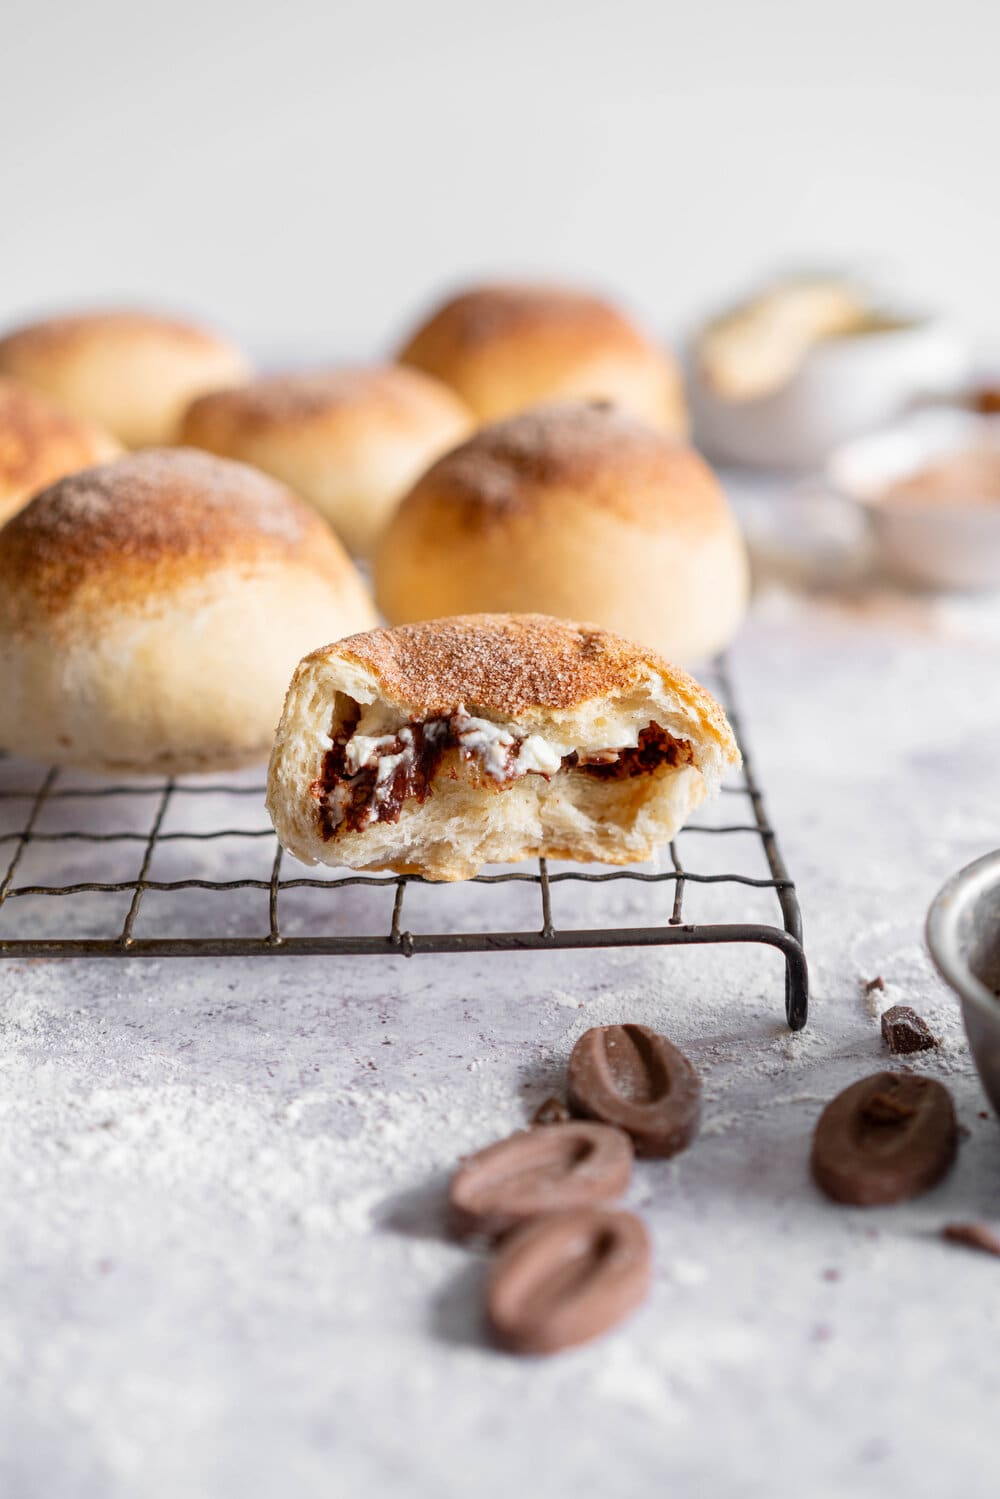 Cream Cheese and Milk Chocolate Stuffed Buns - sweet, soft white bread is filled with creamy milk chocolate and cream cheese, then brushed with butter and sprinkled with cinnamon sugar, then baked to golden chocolate perfection. #chocolatebuns #creamcheese